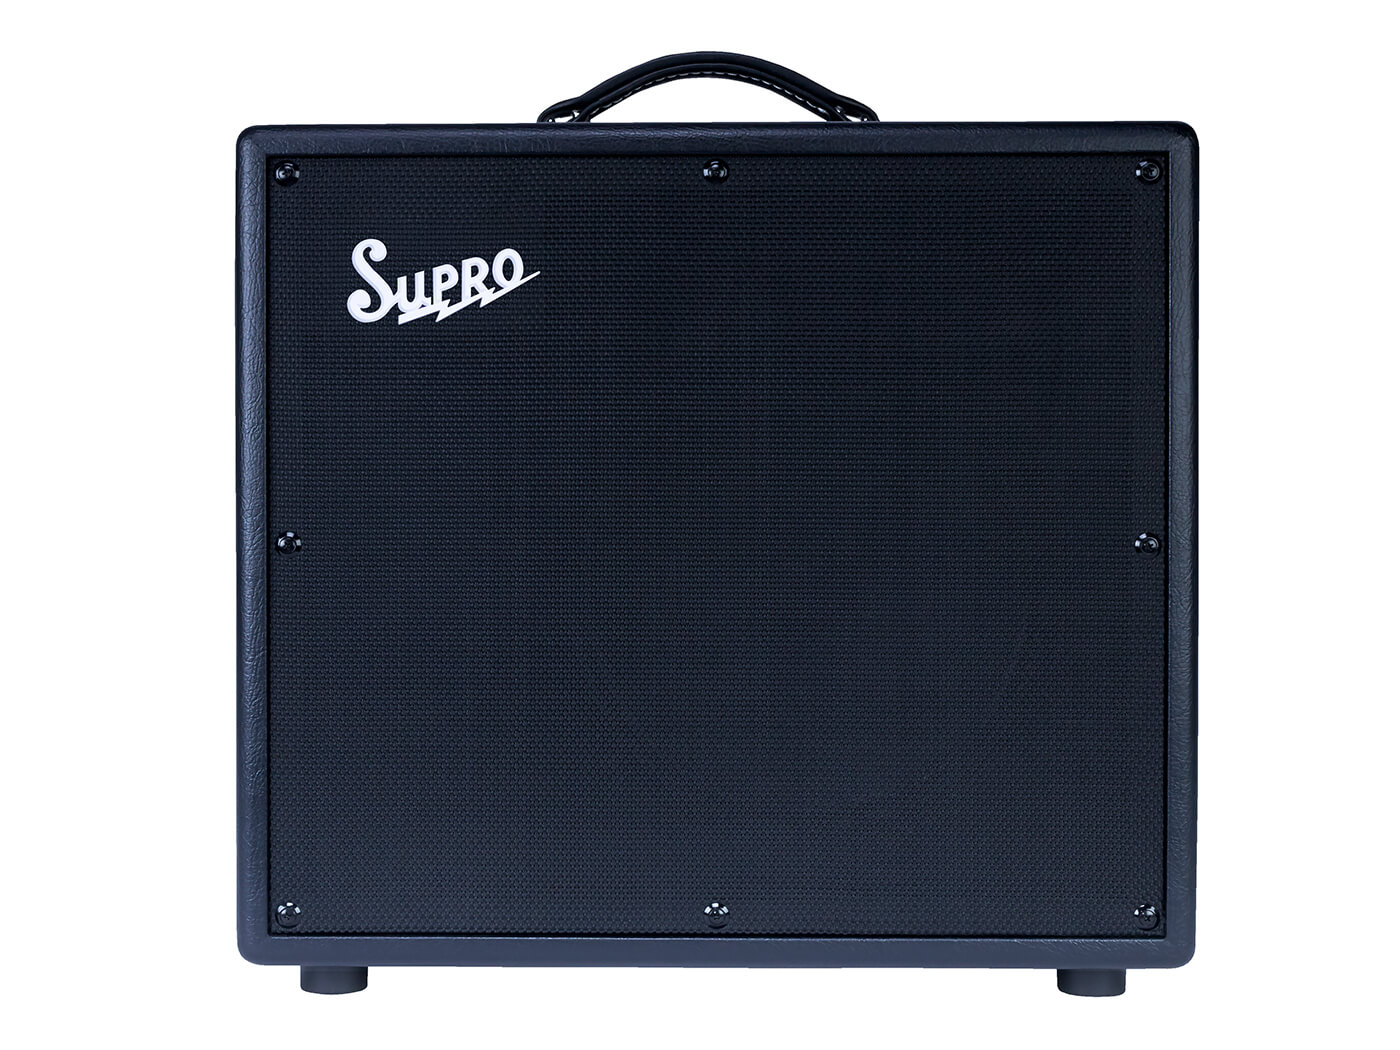 Supro Galaxy combo front